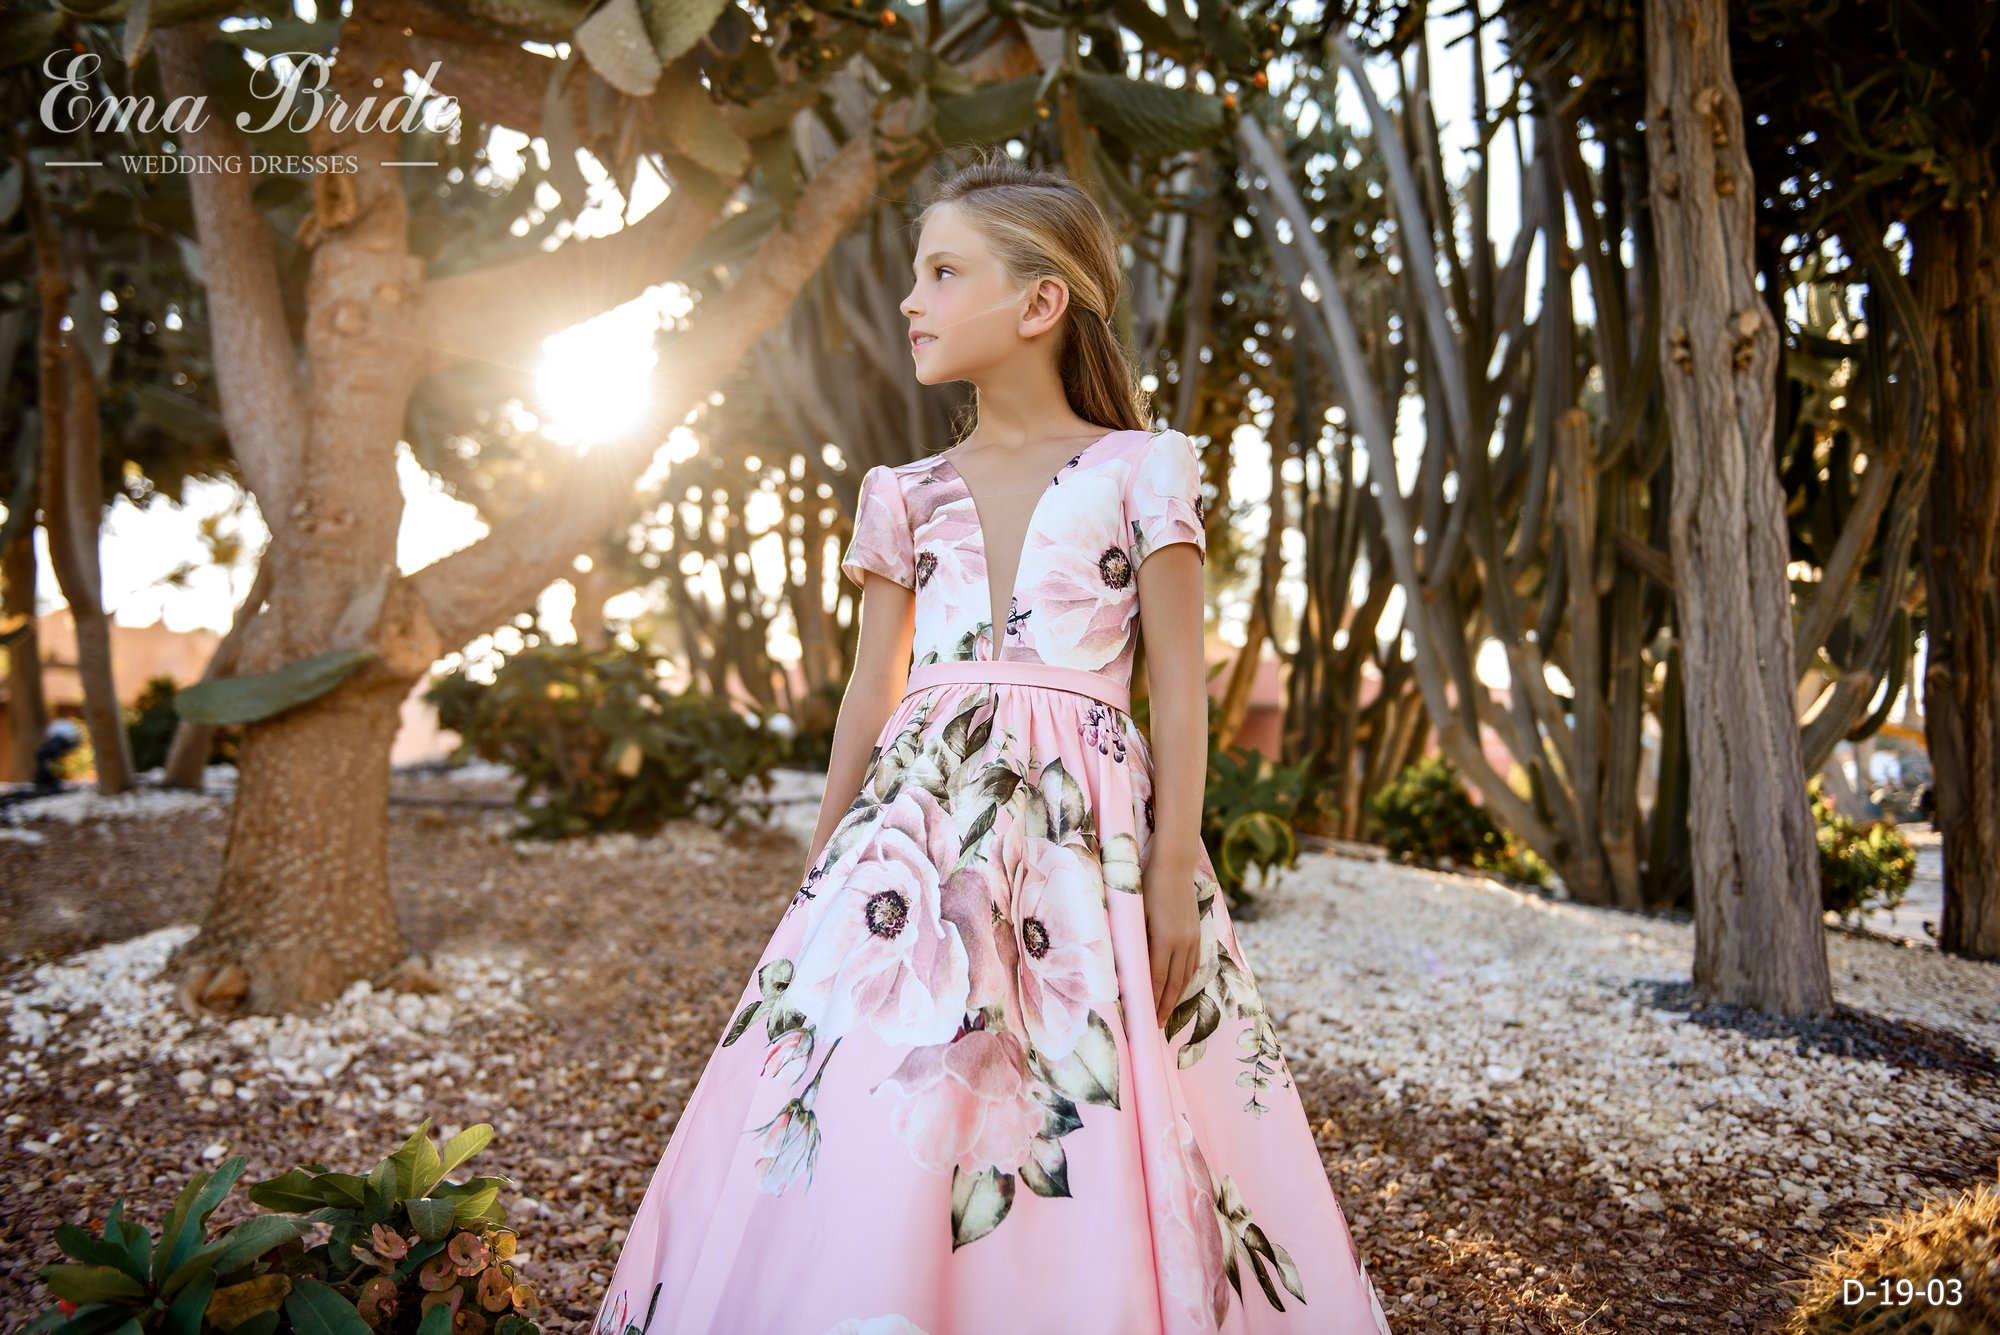 Children's dress by EmaBride D-19-03 2019-6